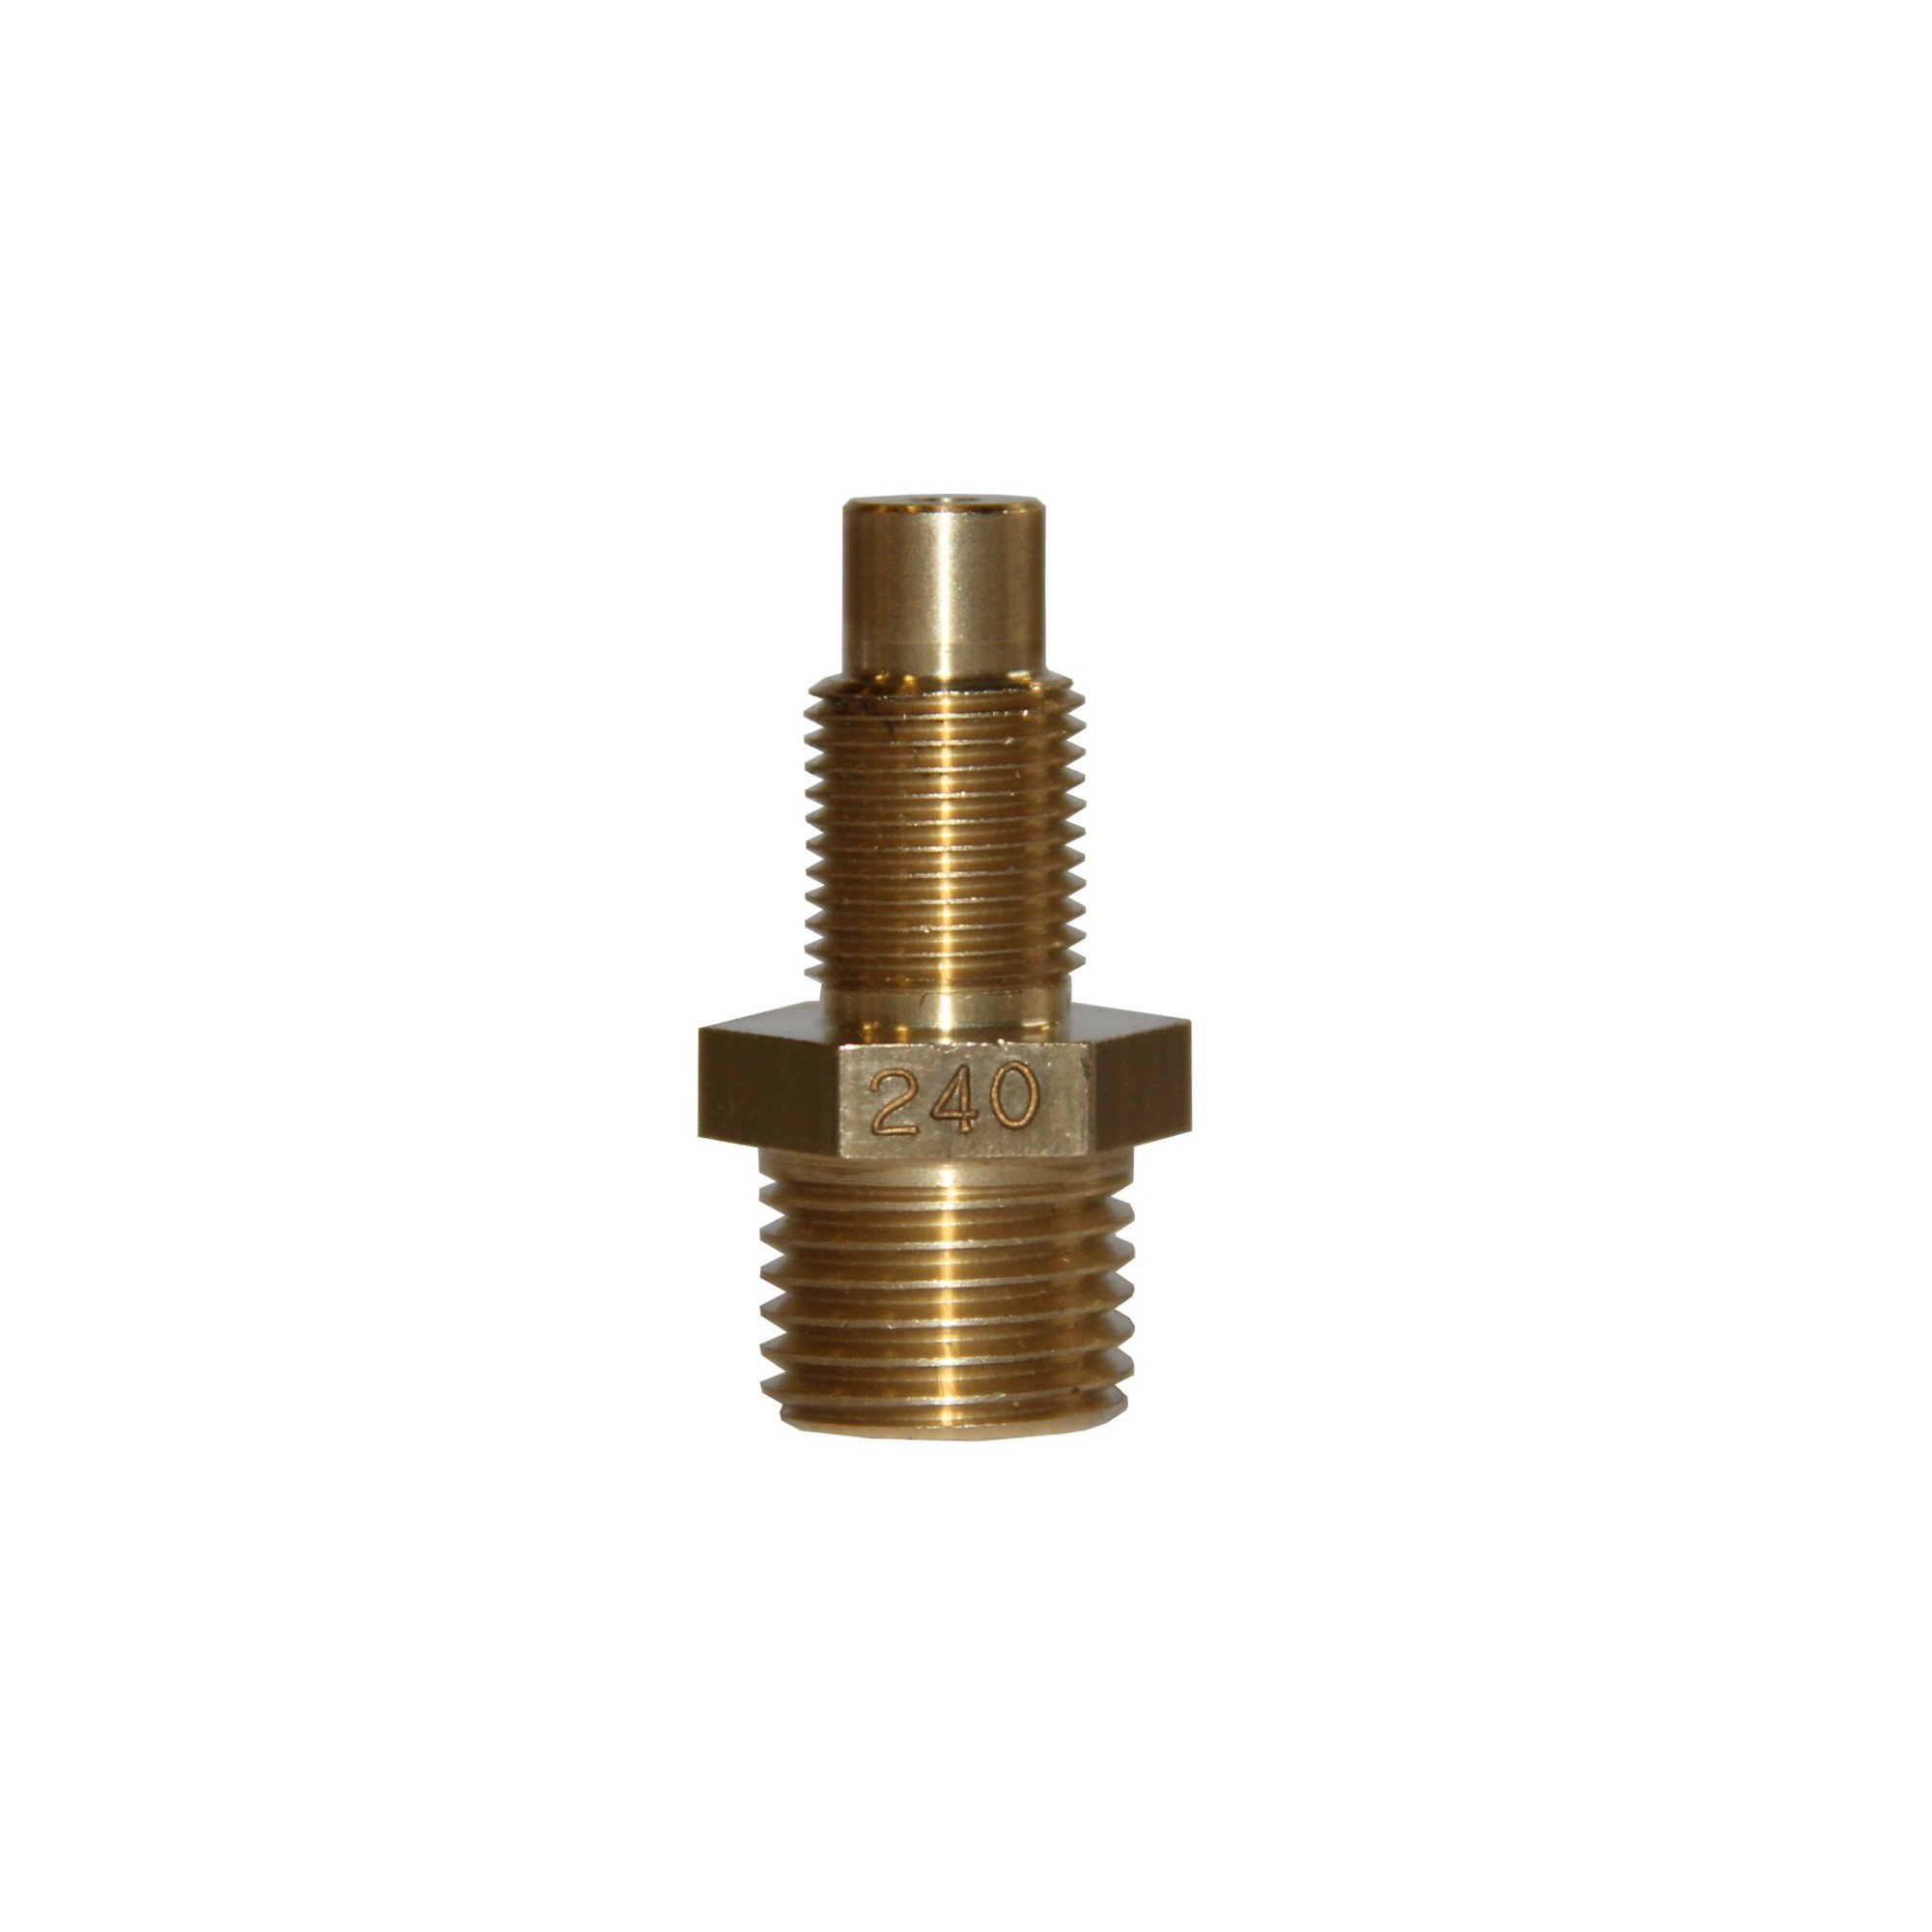 HEAD INJECTOR GAS: 240 x 18VB